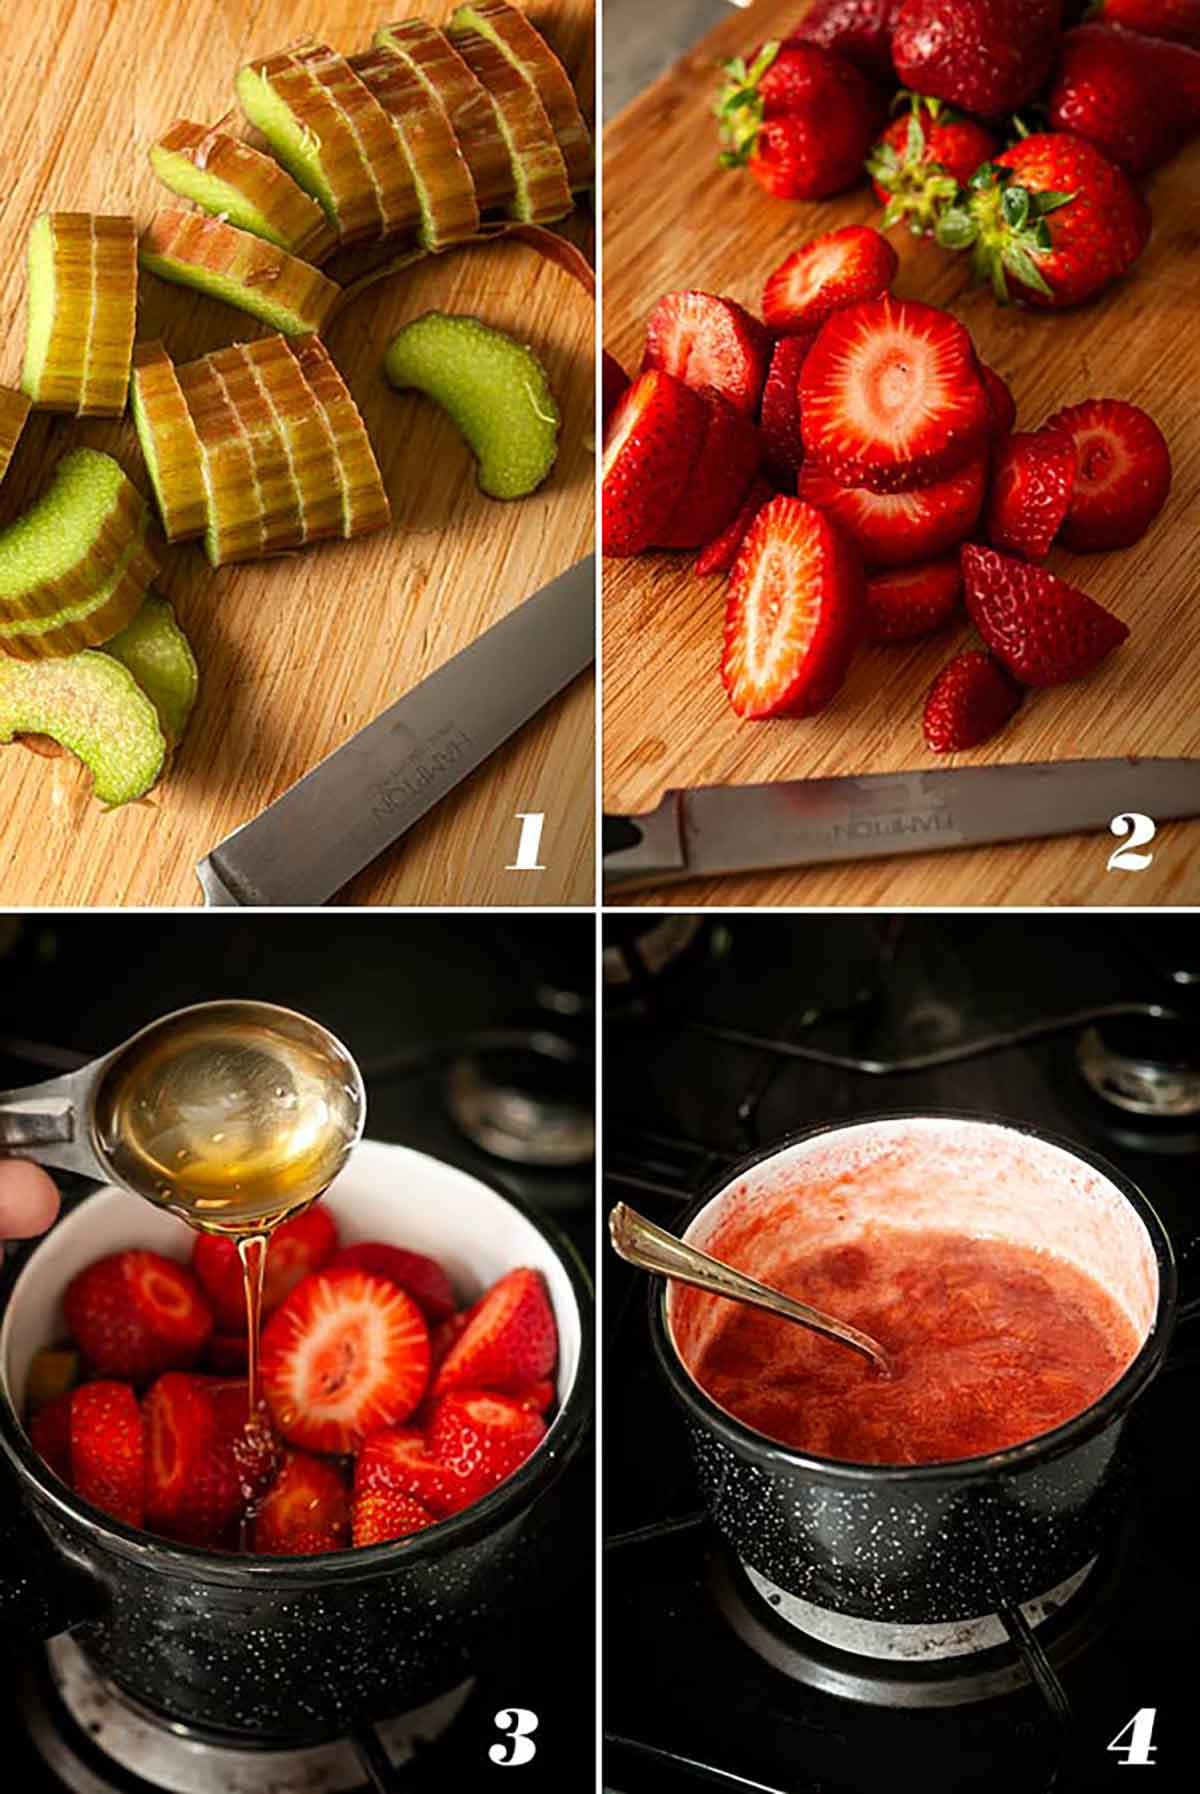 A collage of 4 numbered images showing how to make strawberry rhubarb compote.